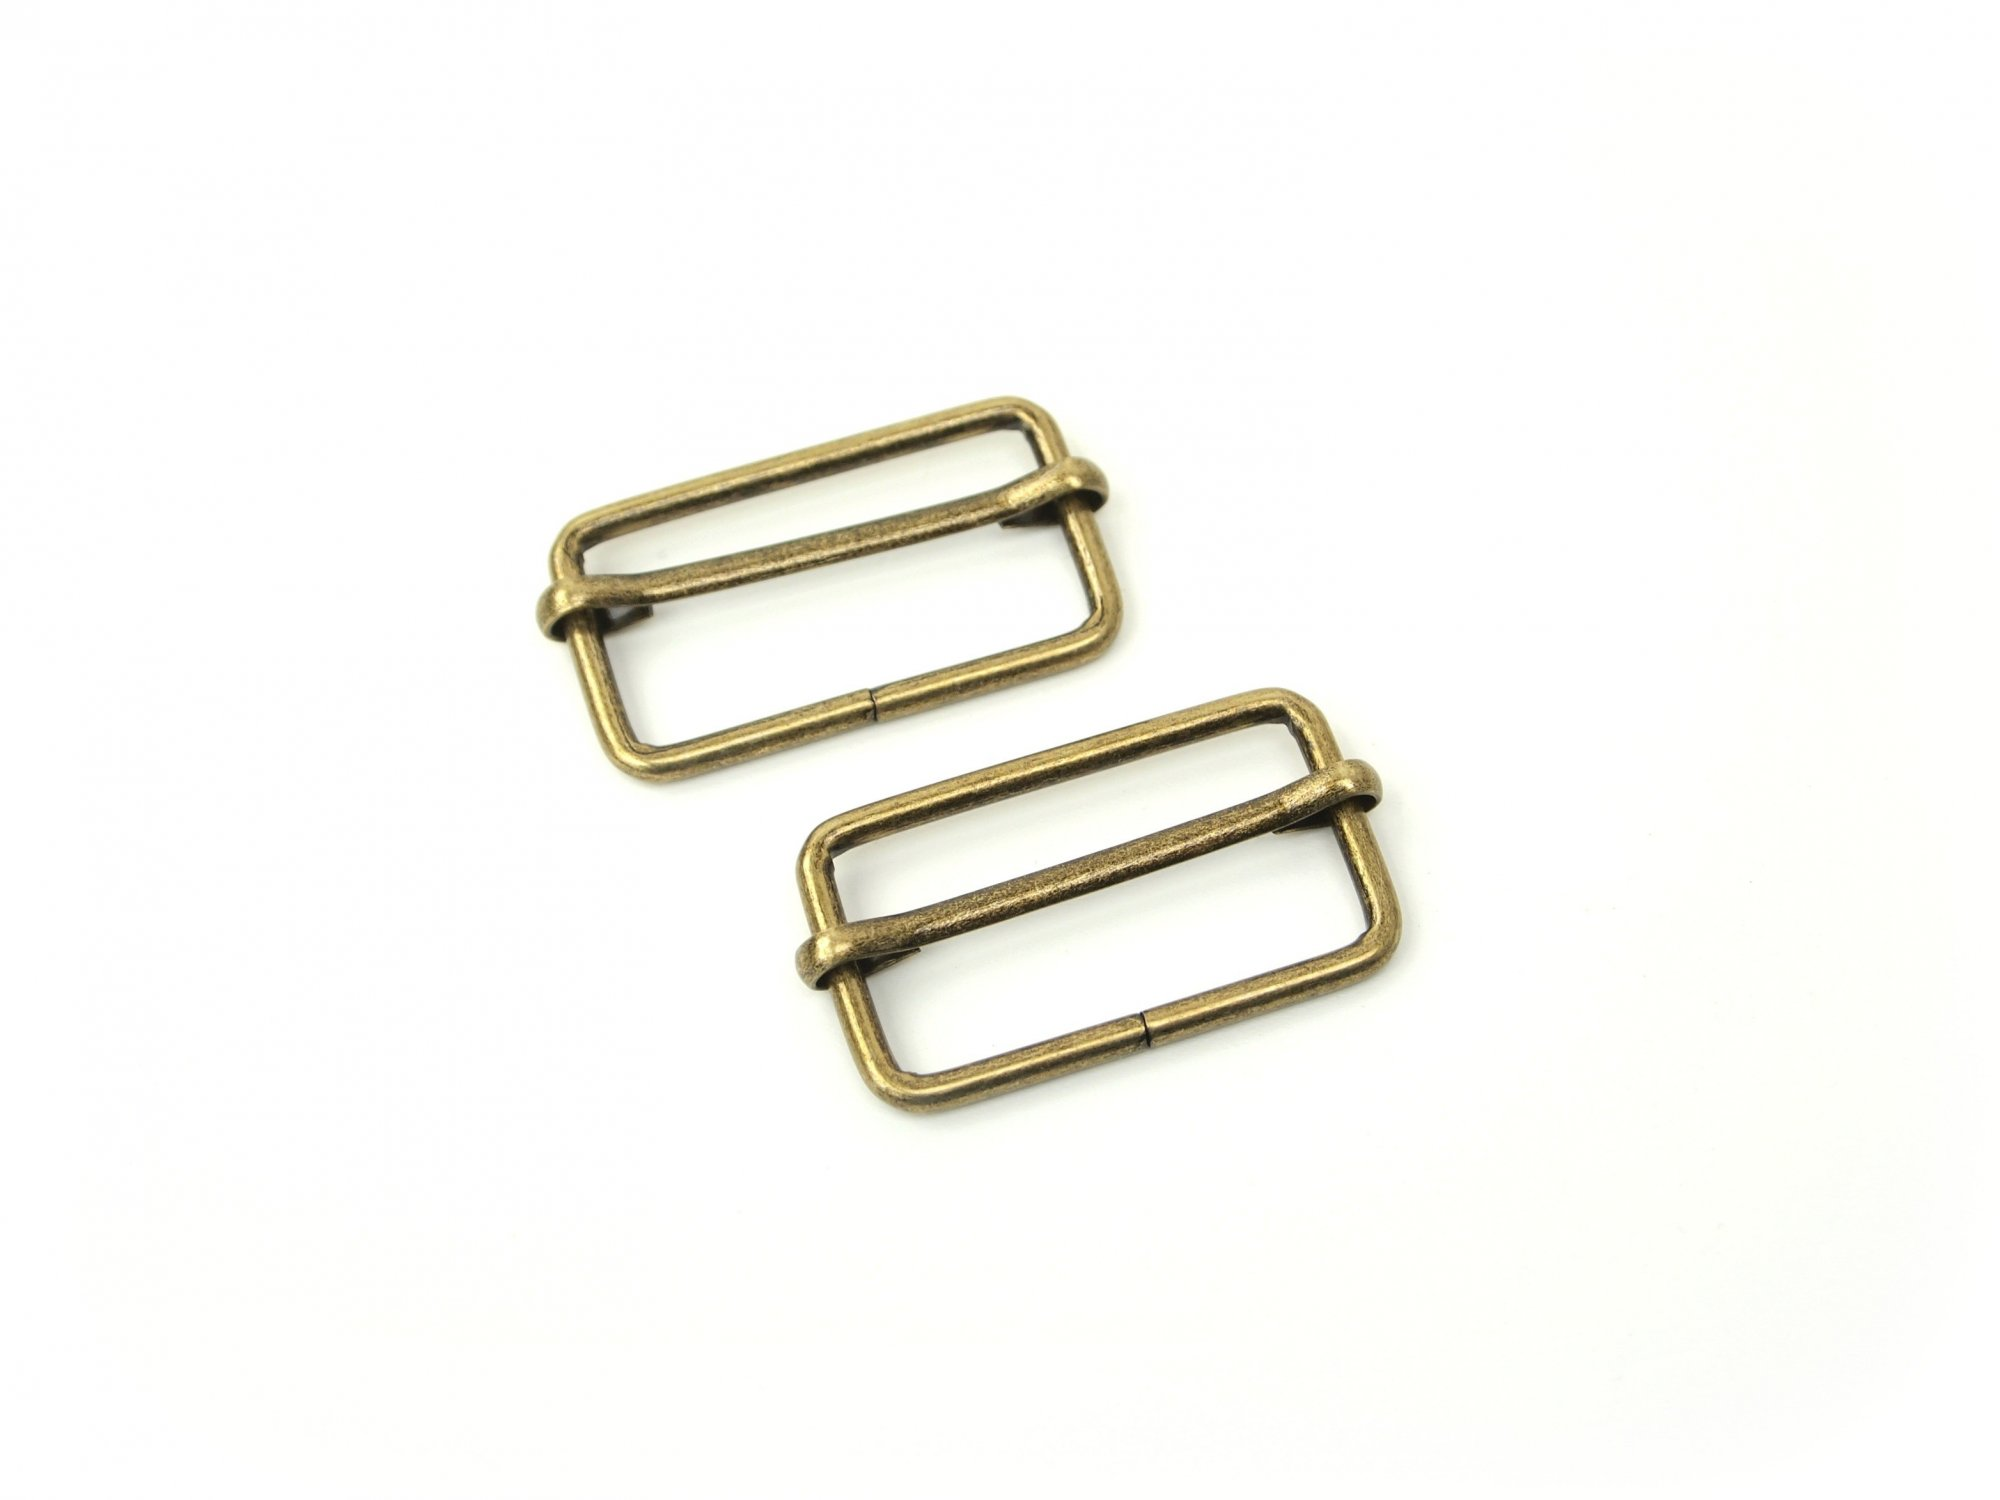 Slider Buckle - 1 1/2 Antique Brass